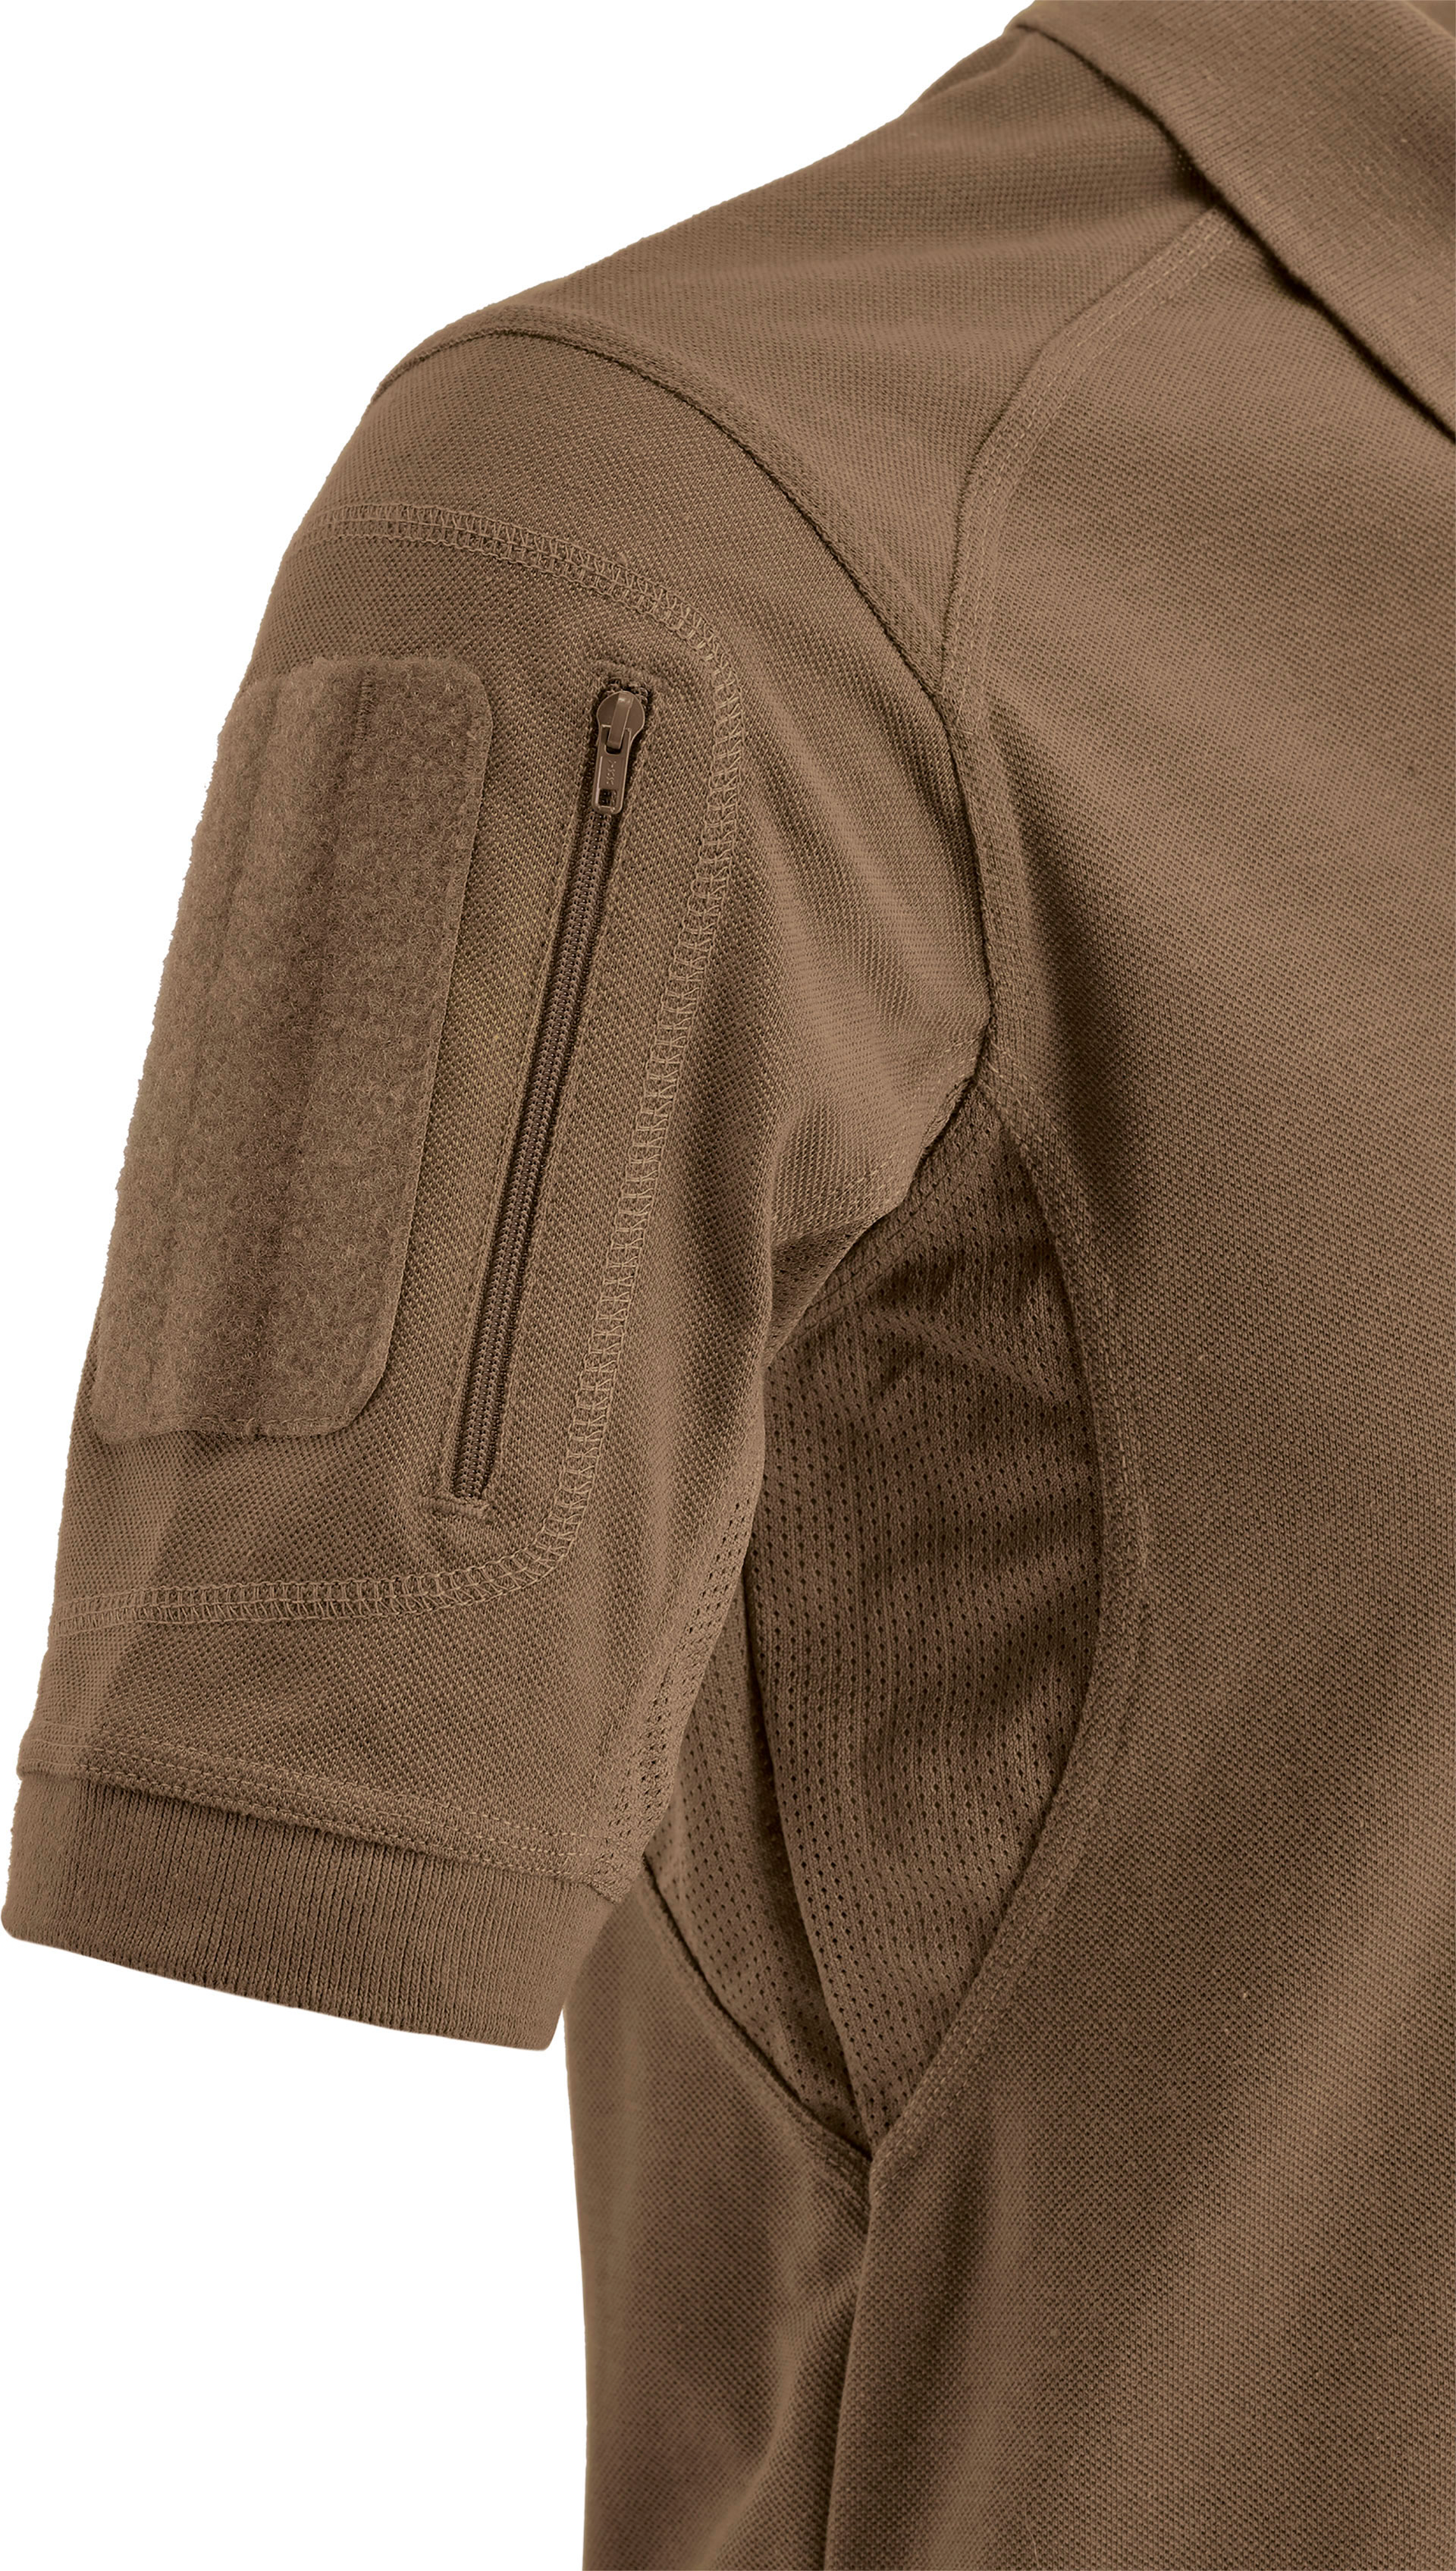 DEFCON 5 TACTICAL POLO SHORT SLEEVES WITH POCKETS D5 1771 T Shirts And Polo Defcon 5 Italy